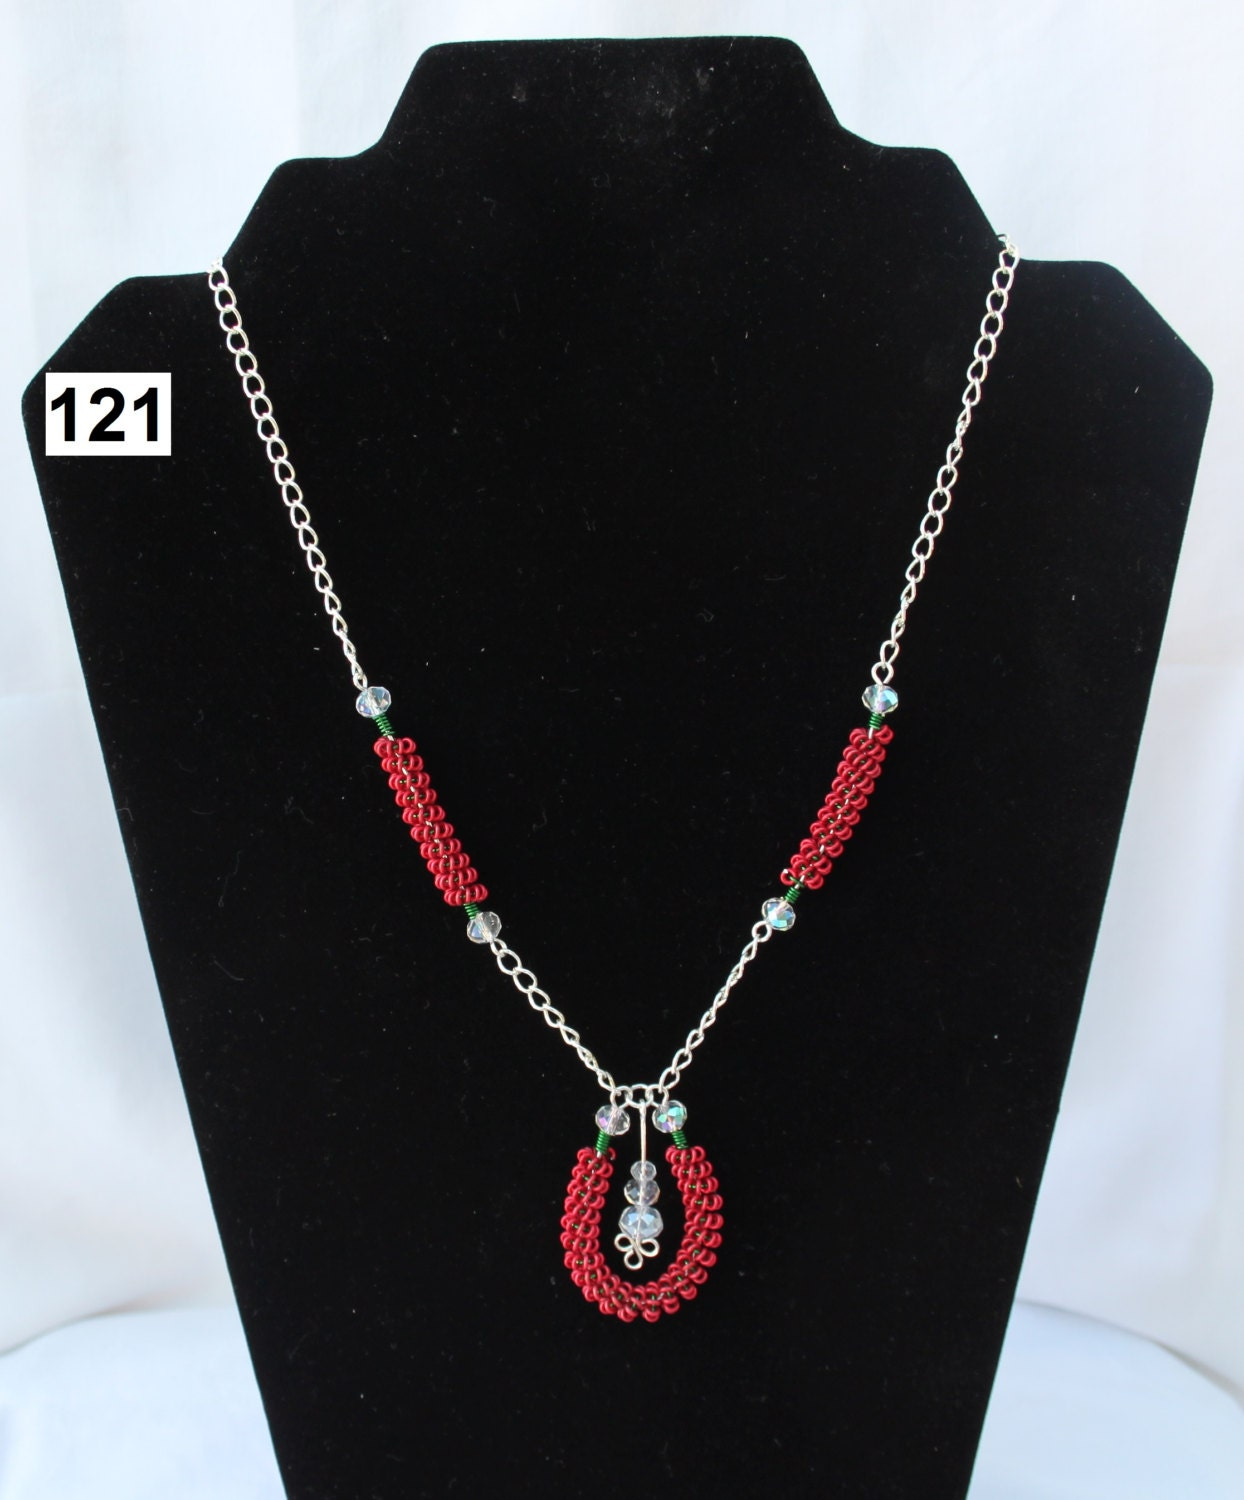 A Red and Green Horseshoe Shaped Coiled Necklace using Jewellery Wire and Clear Faceted Beads Silver Coated Wire Trefoil Wirework